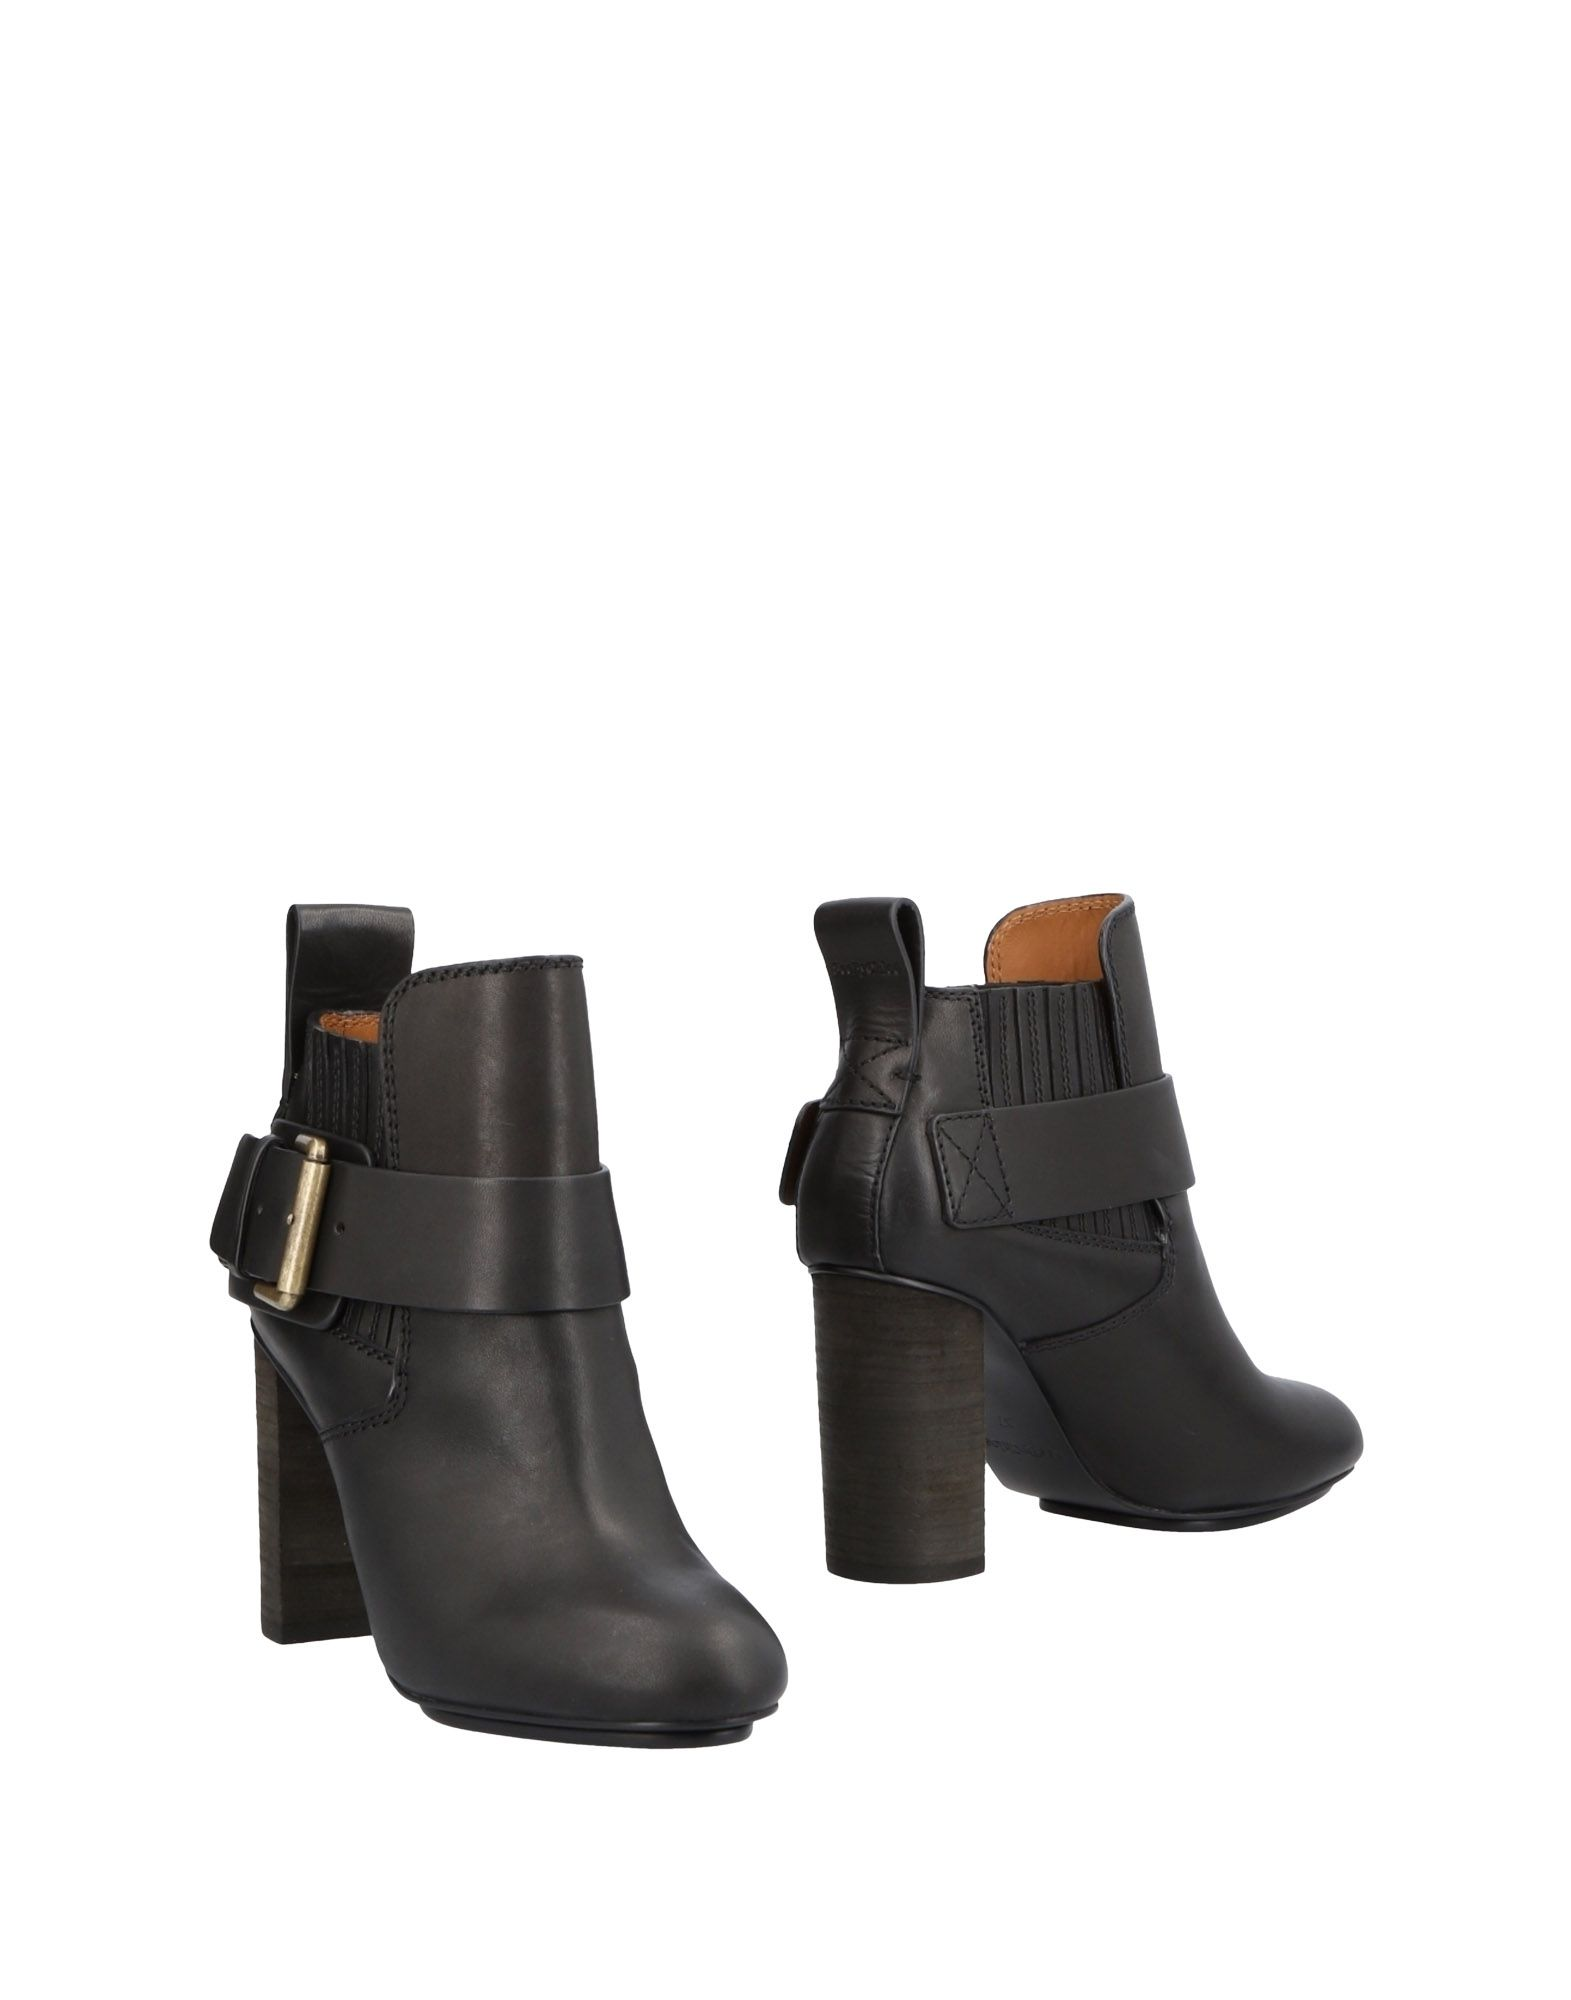 See By Neue Chloé Stiefelette Damen  11483407OS Neue By Schuhe 352d0a